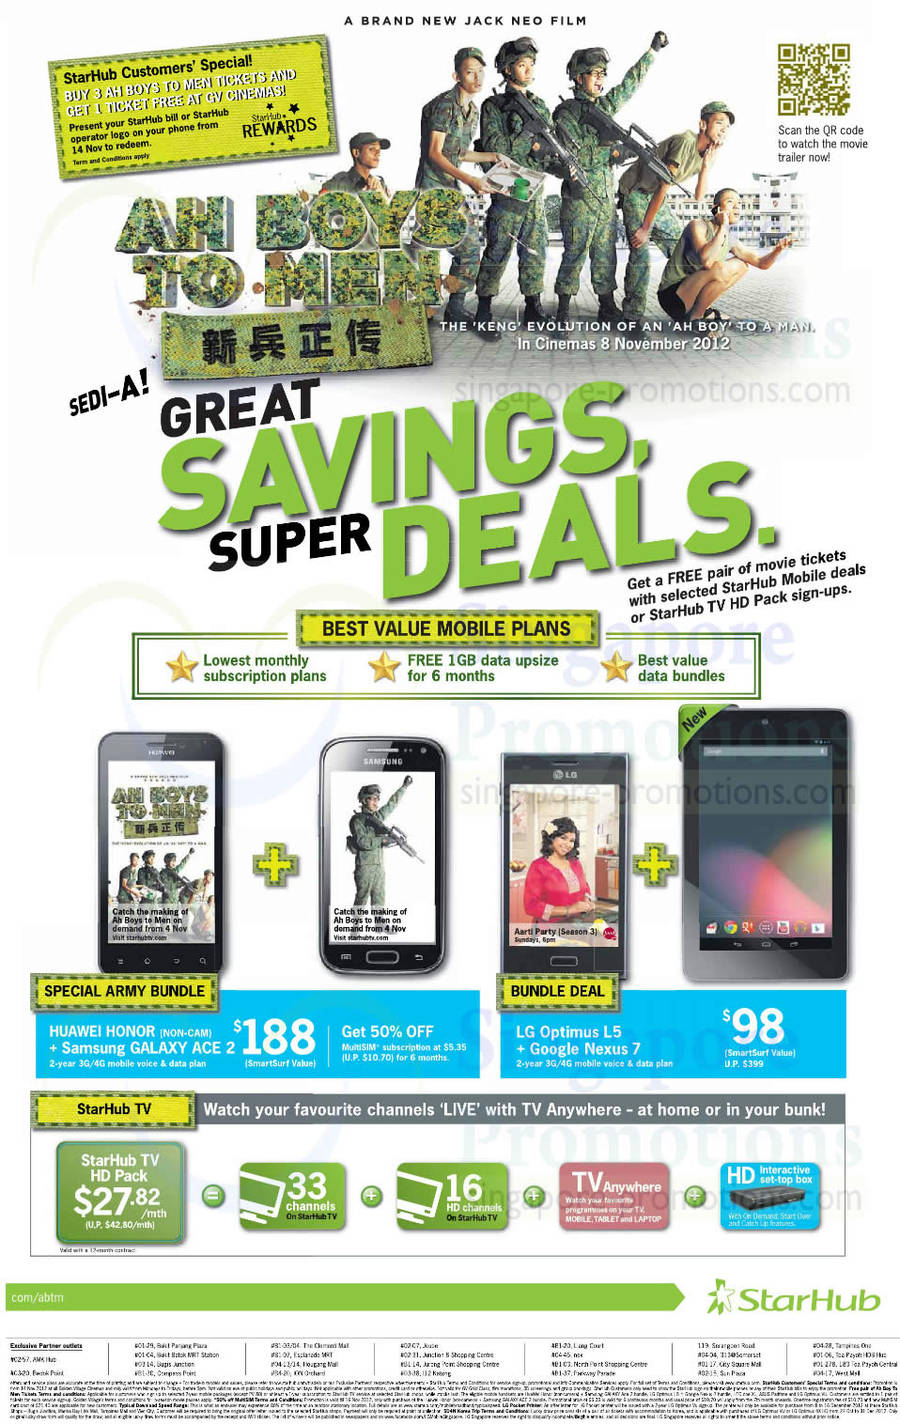 Army Bundle Huawei Honor n Samsung Galaxy Ace 2, LG Optimus L5 n Google Nexus 7, Cable TV